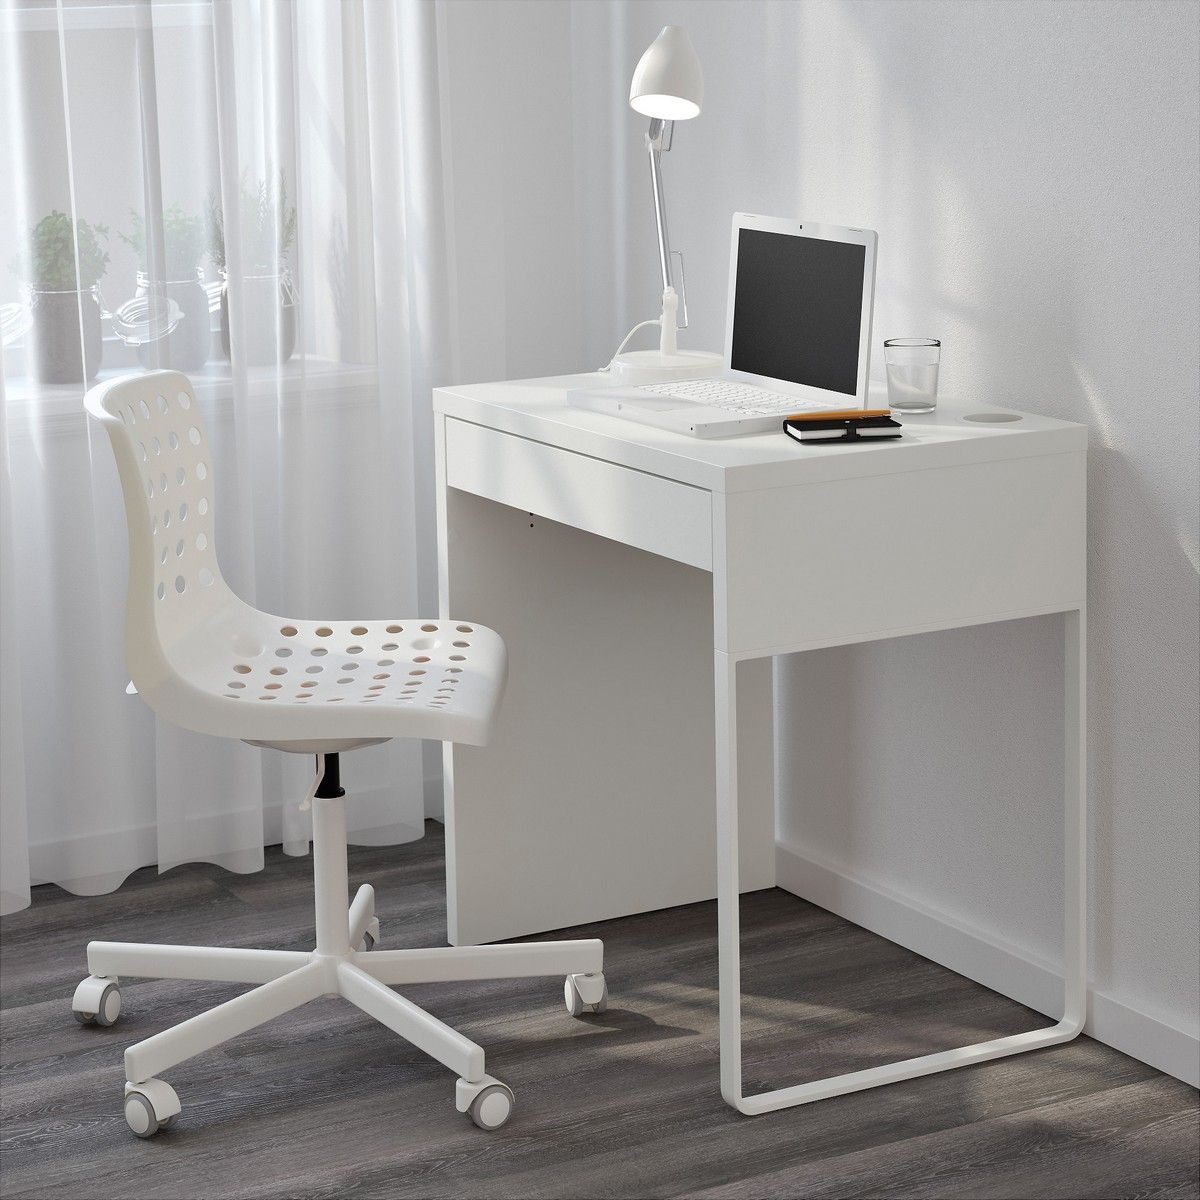 computer captivating amusing ikea desk news digital on small hutch best corner interesting black desks with